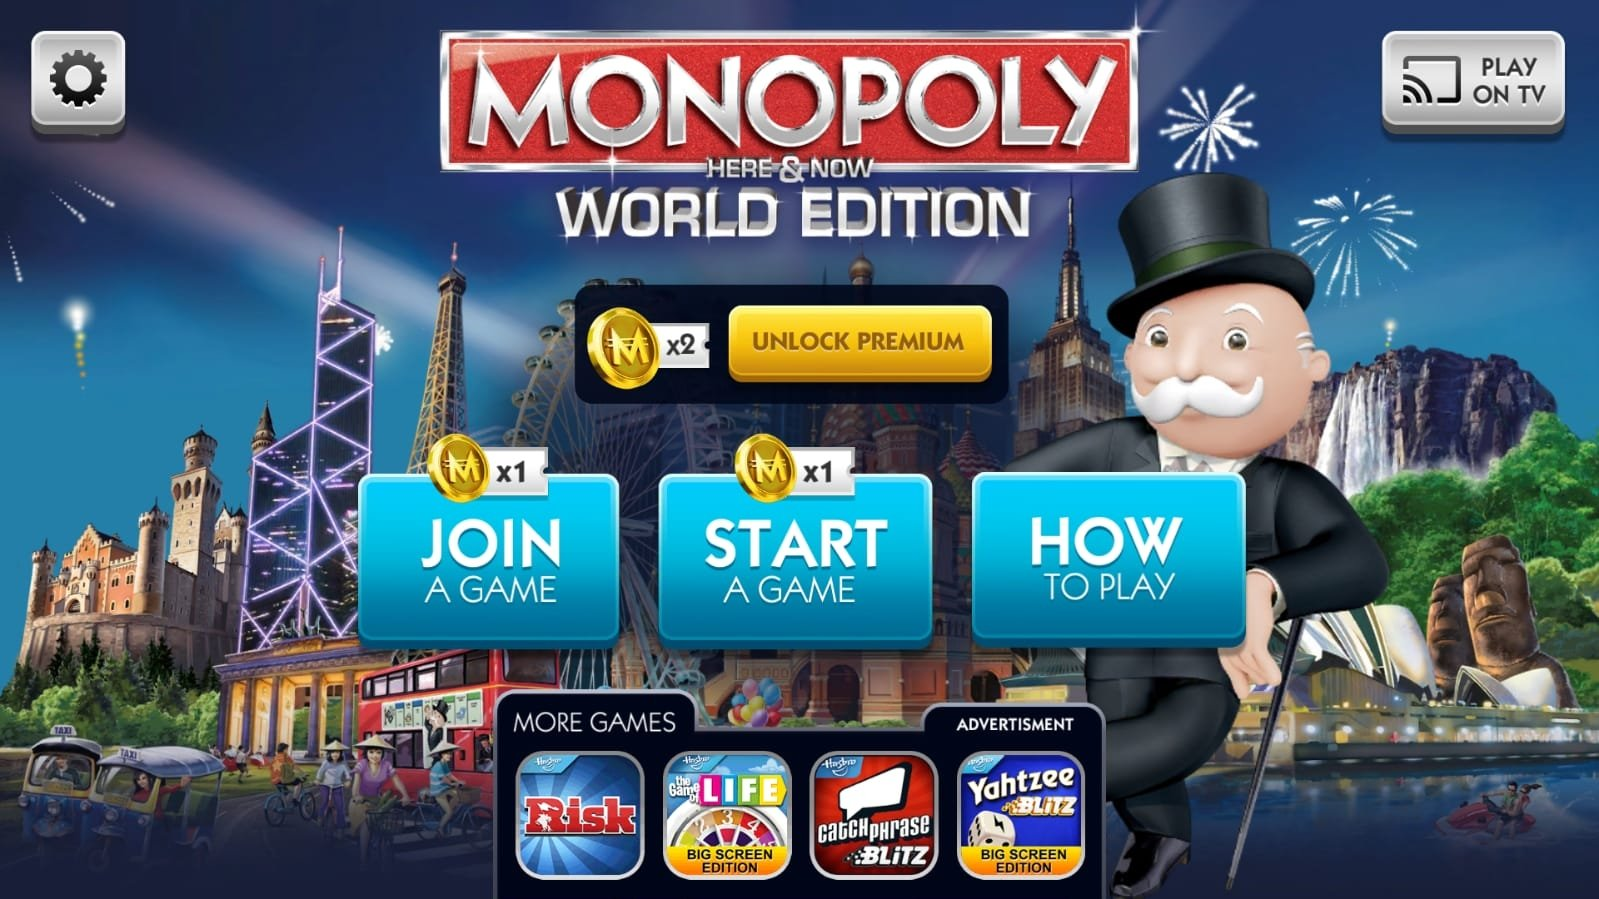 Download monopoly for android apk.